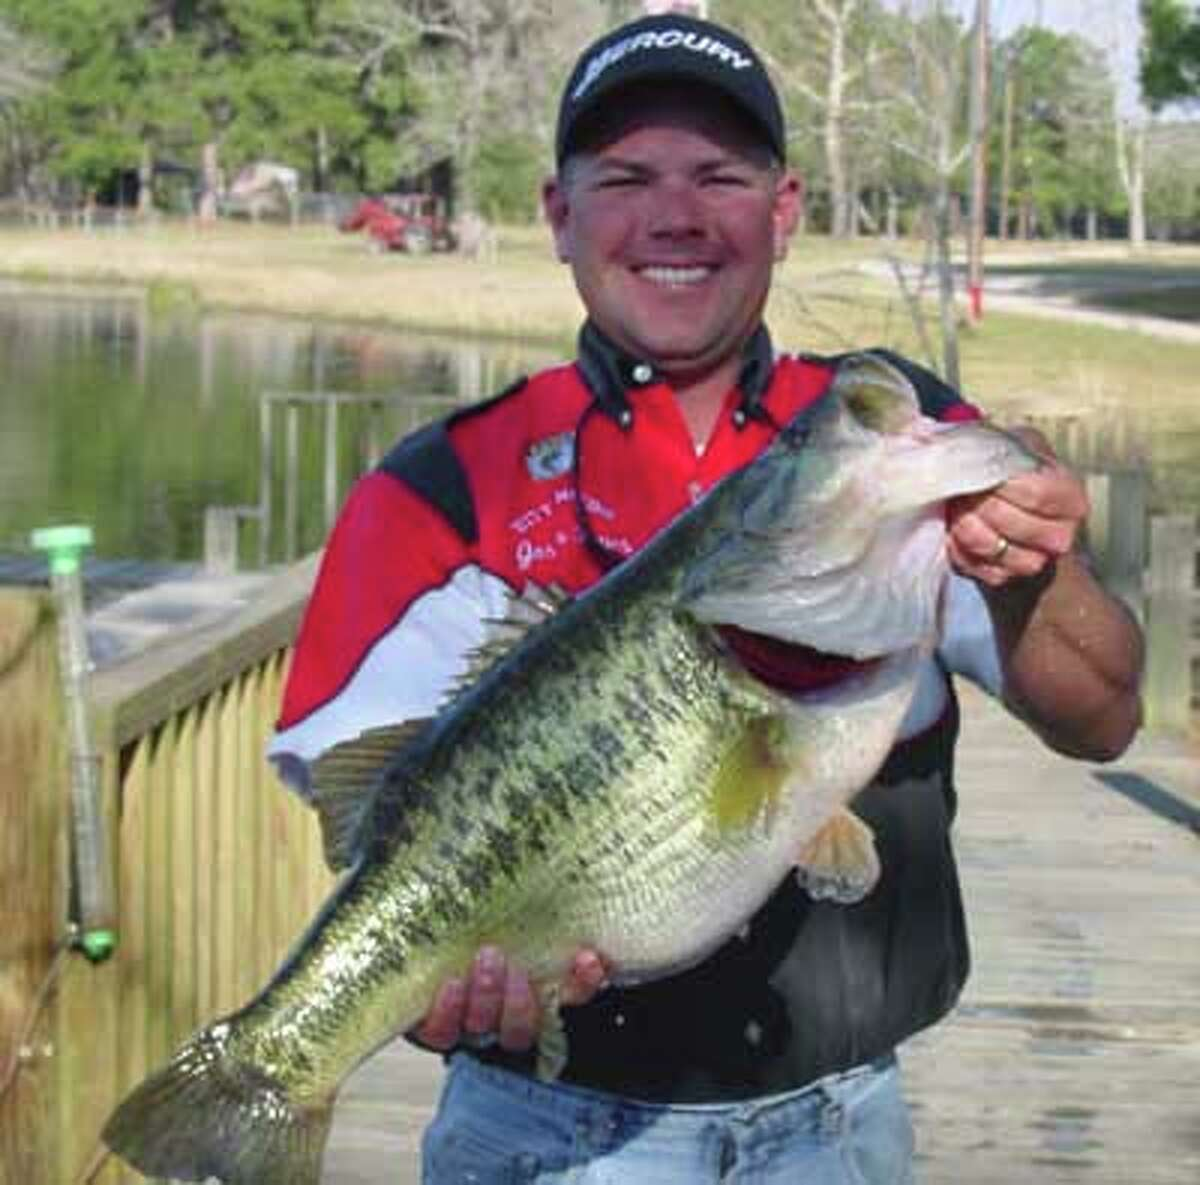 Date: February 19, 2004 in Private Lake - Quantum Lakes Weight: 15.1 pounds Bait/Lure: Lucky Craft LVR 10 lipless crankbait Day of week: Thursday